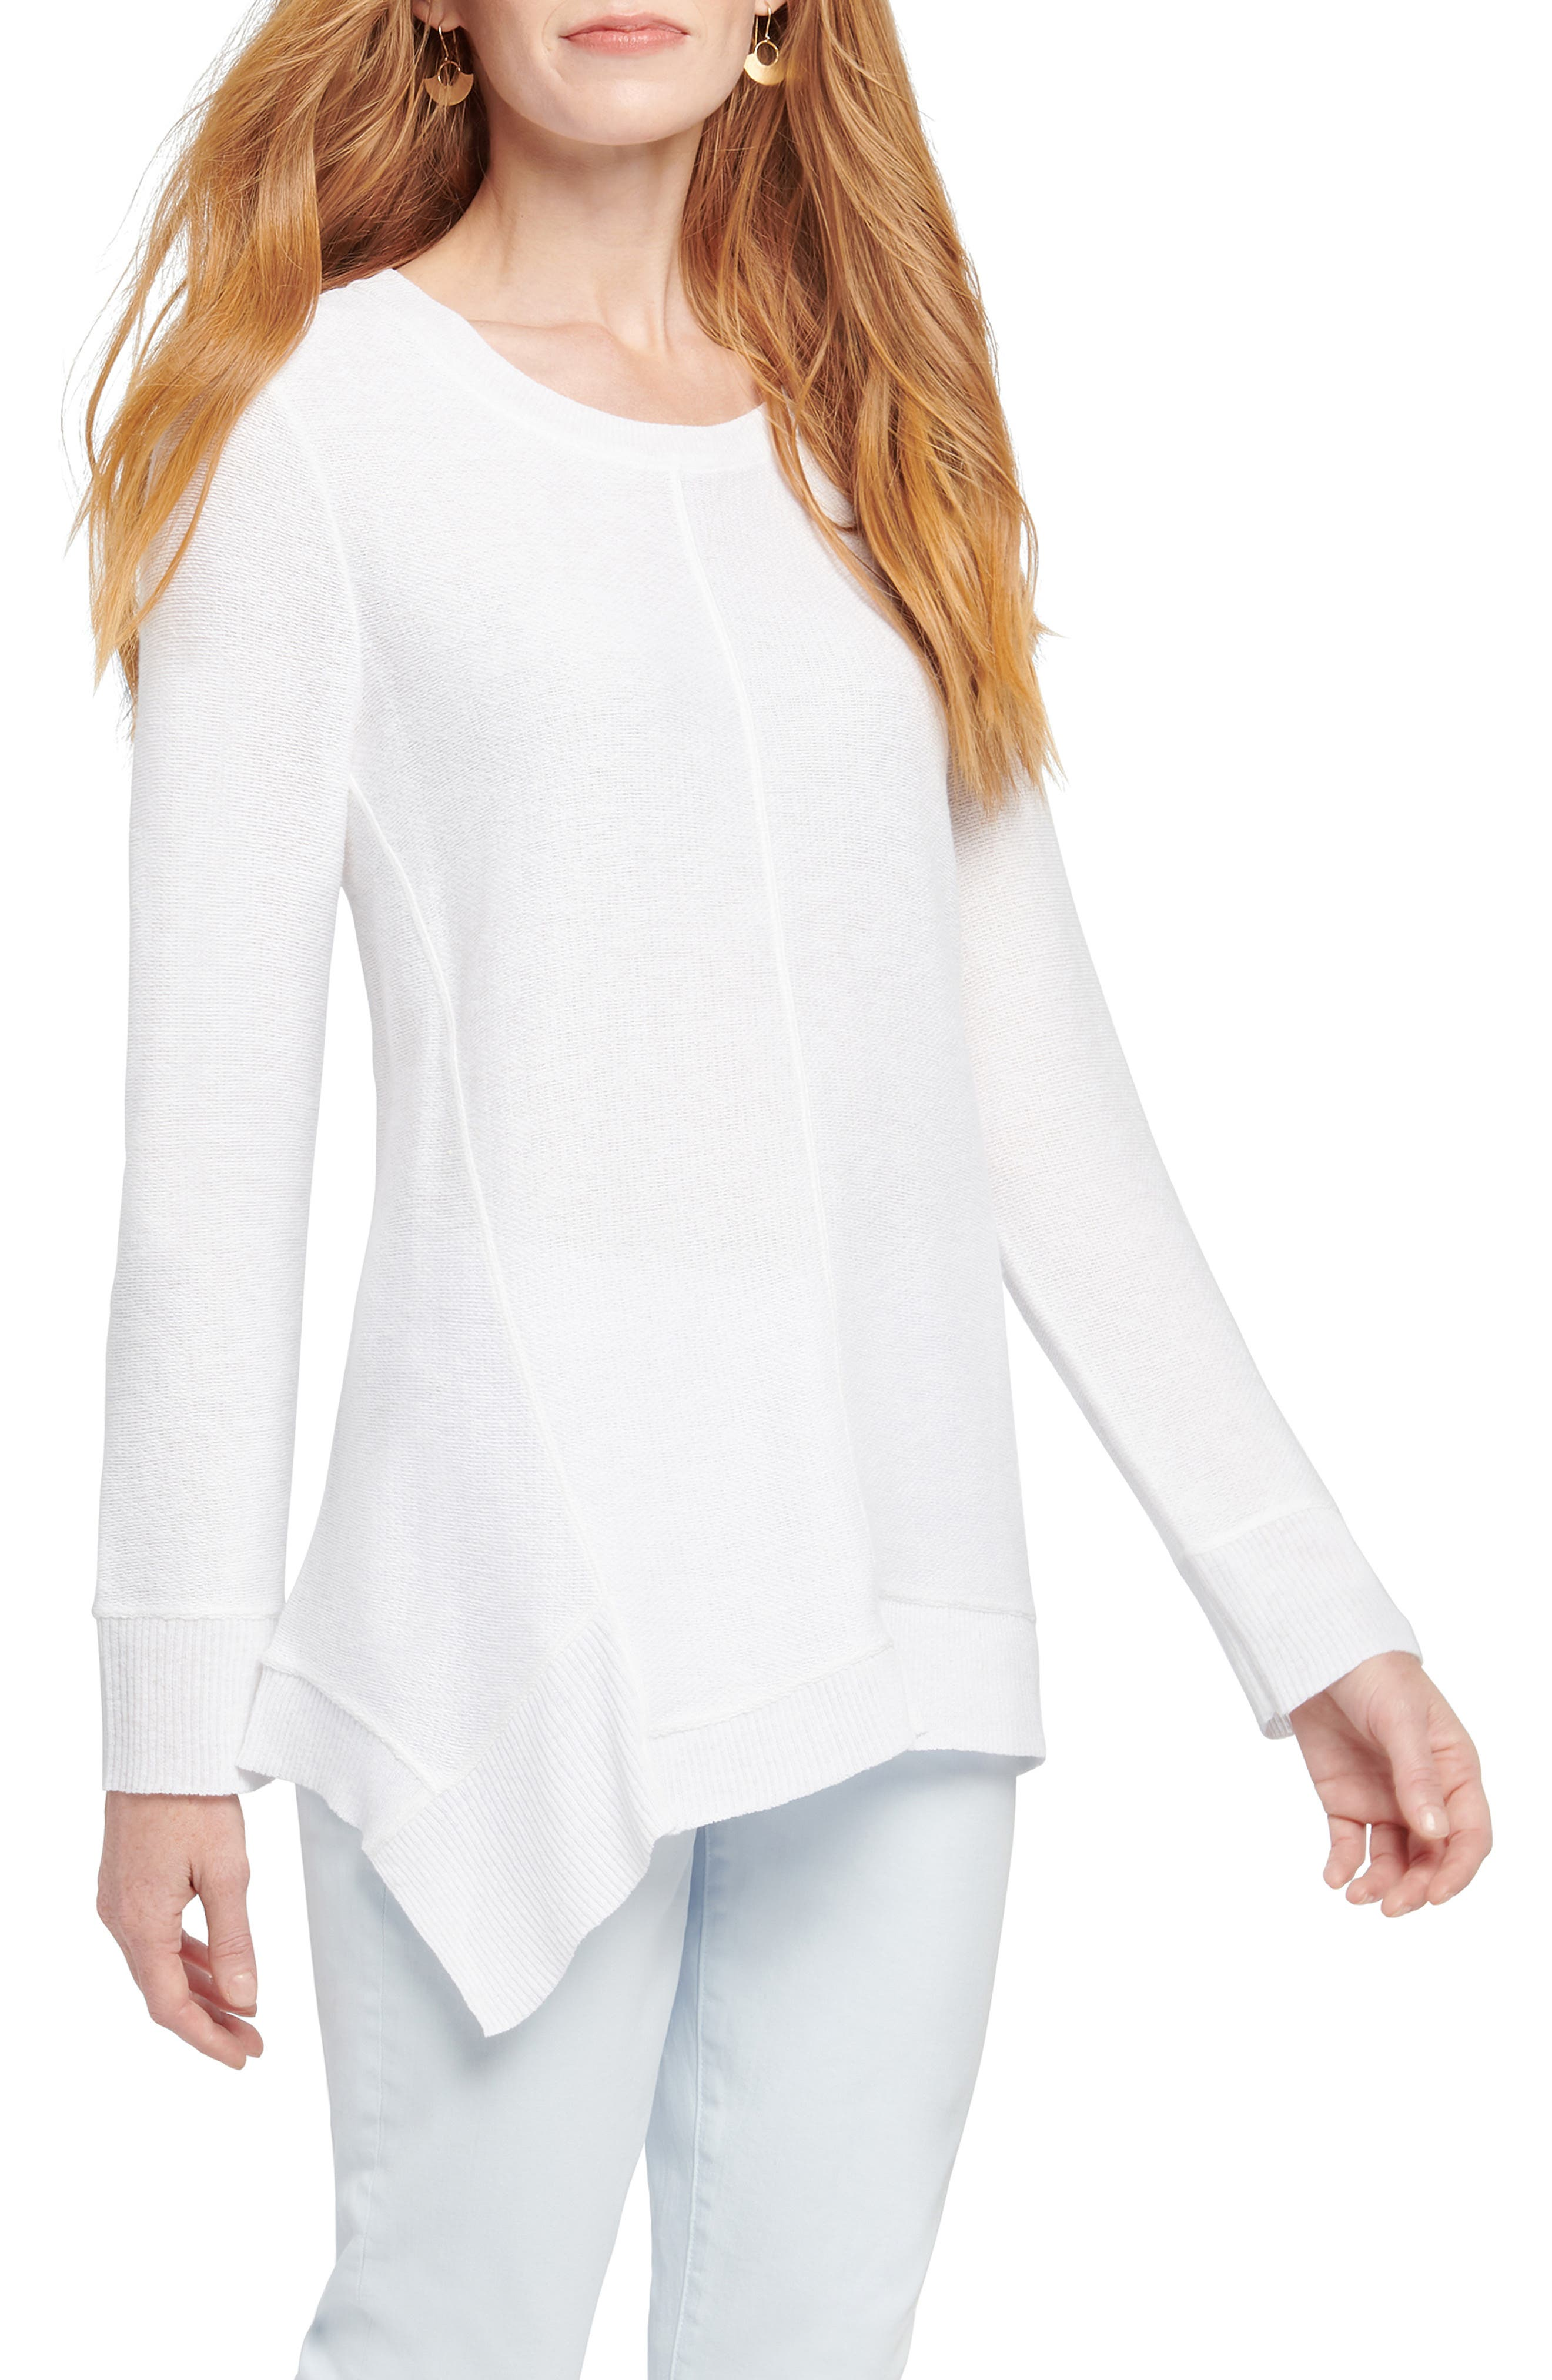 An elongated, asymmetrical hem creates an elegant line on a sweater that transitions easily into warmer weather in a lightweight linen blend. Style Name: Nic+Zoe Spring Fling Sweater. Style Number: 5967150. Available in stores.